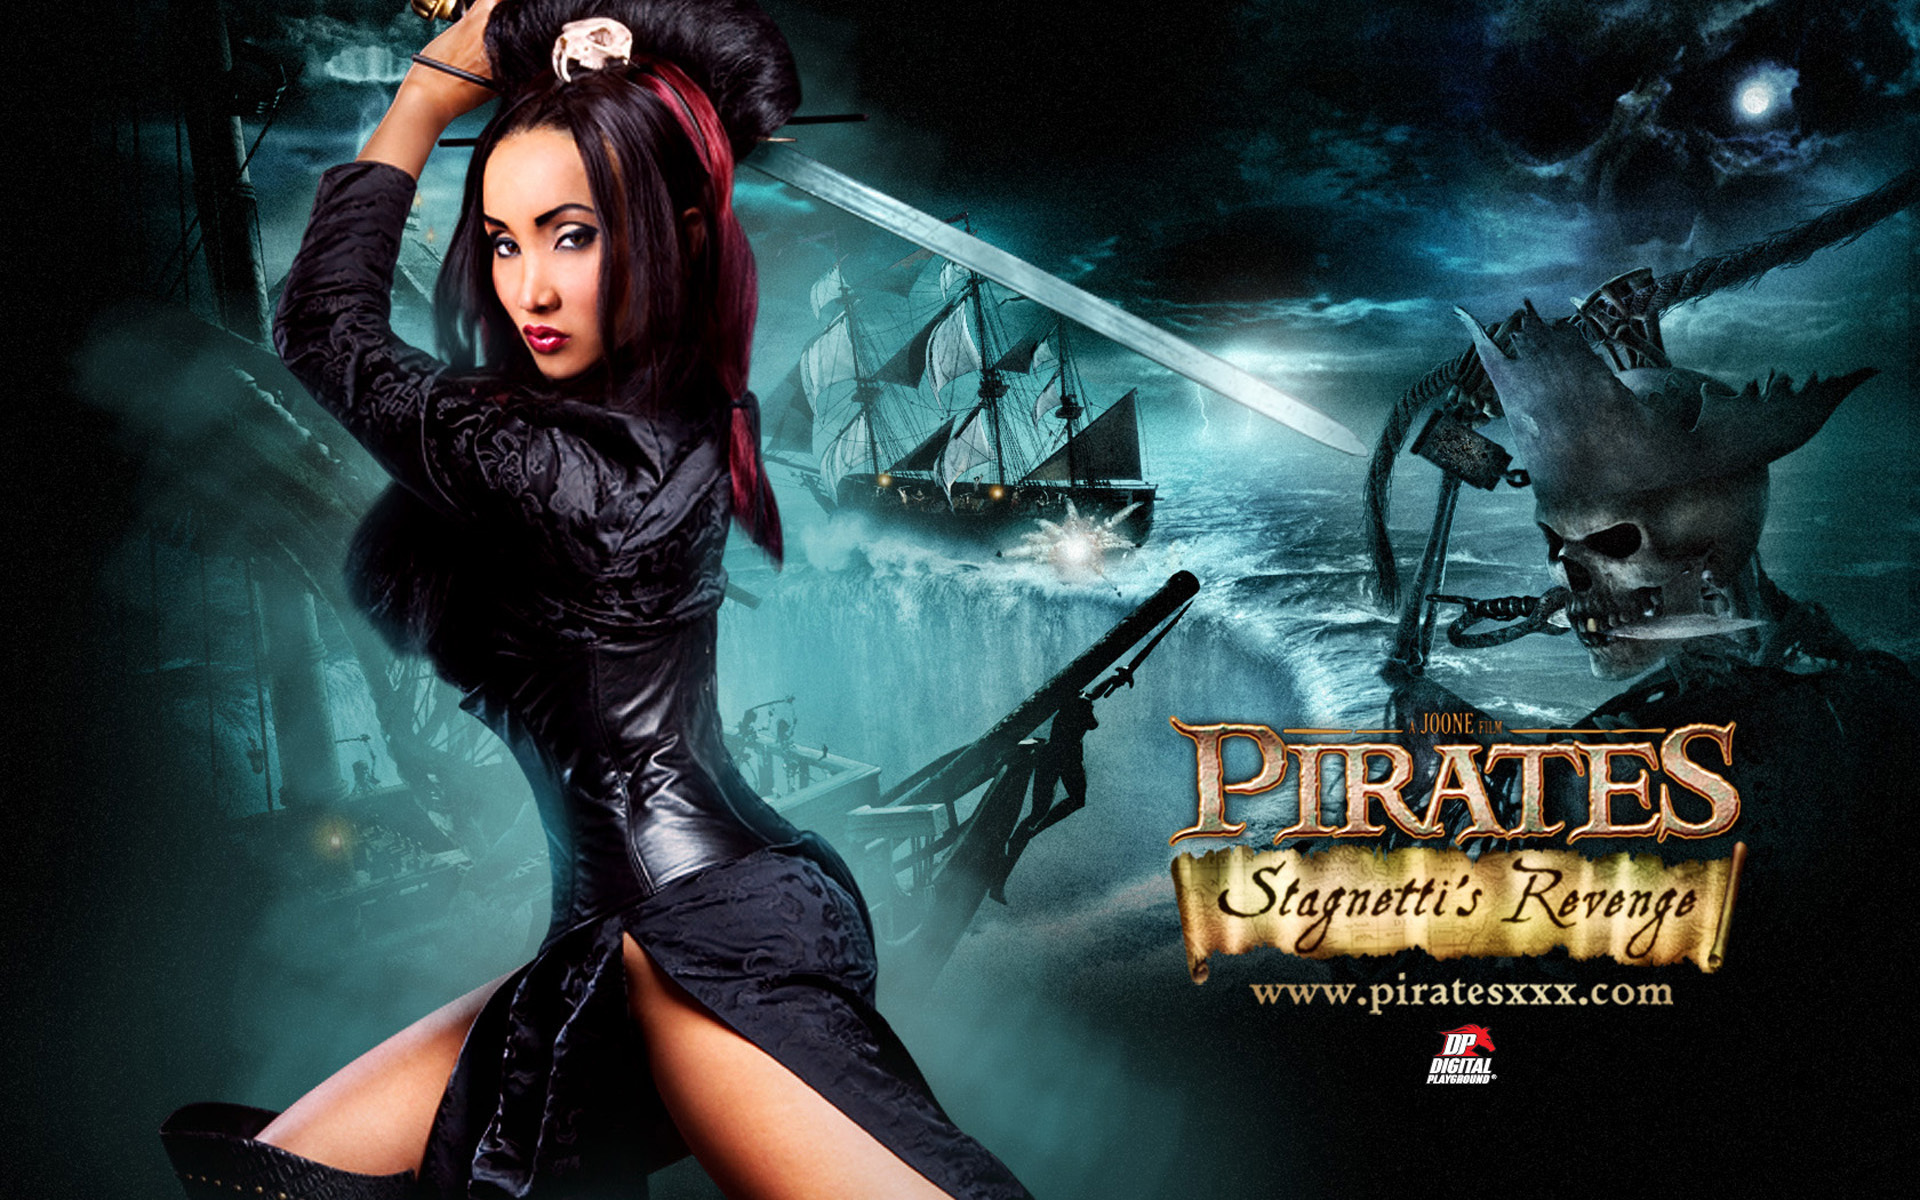 Pirate xxx movie 3gp sexy tube